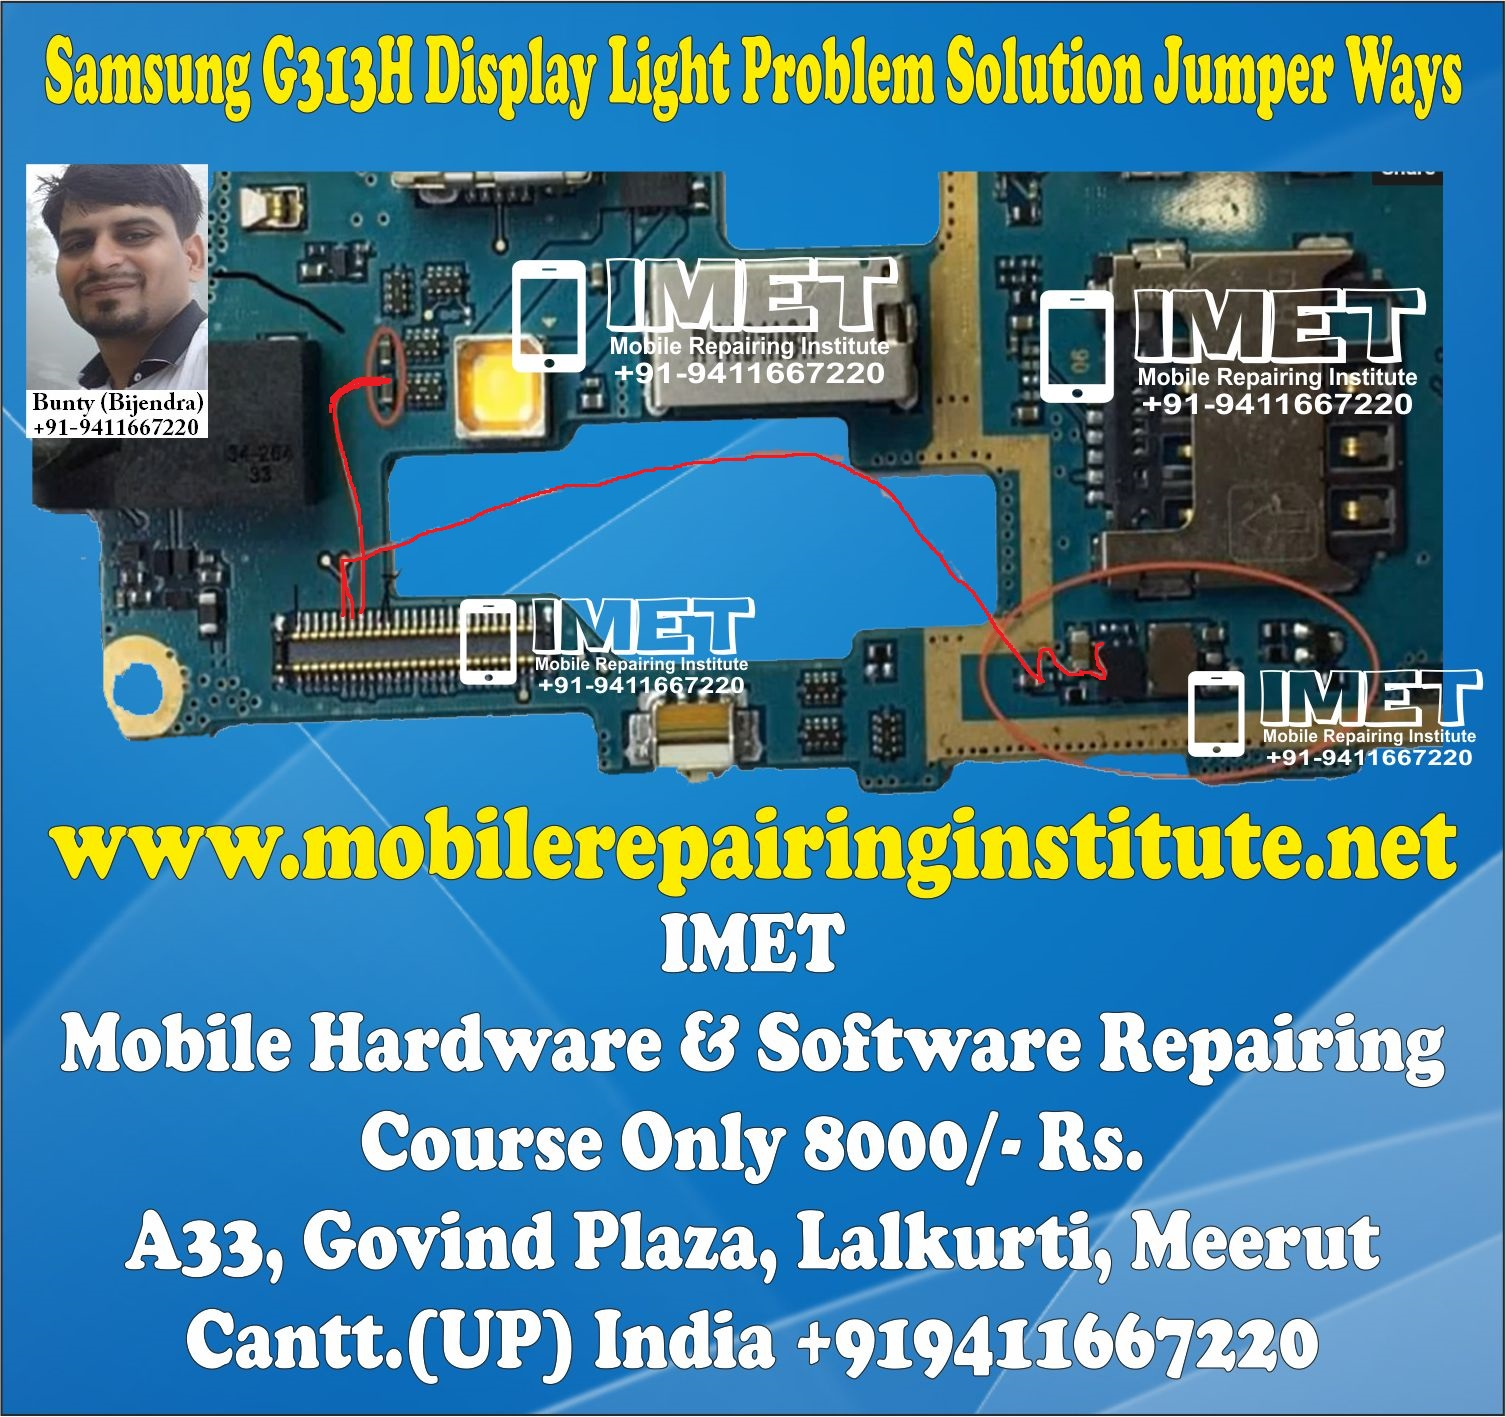 Samsung G313H Display Light Problem Solution Jumper Ways